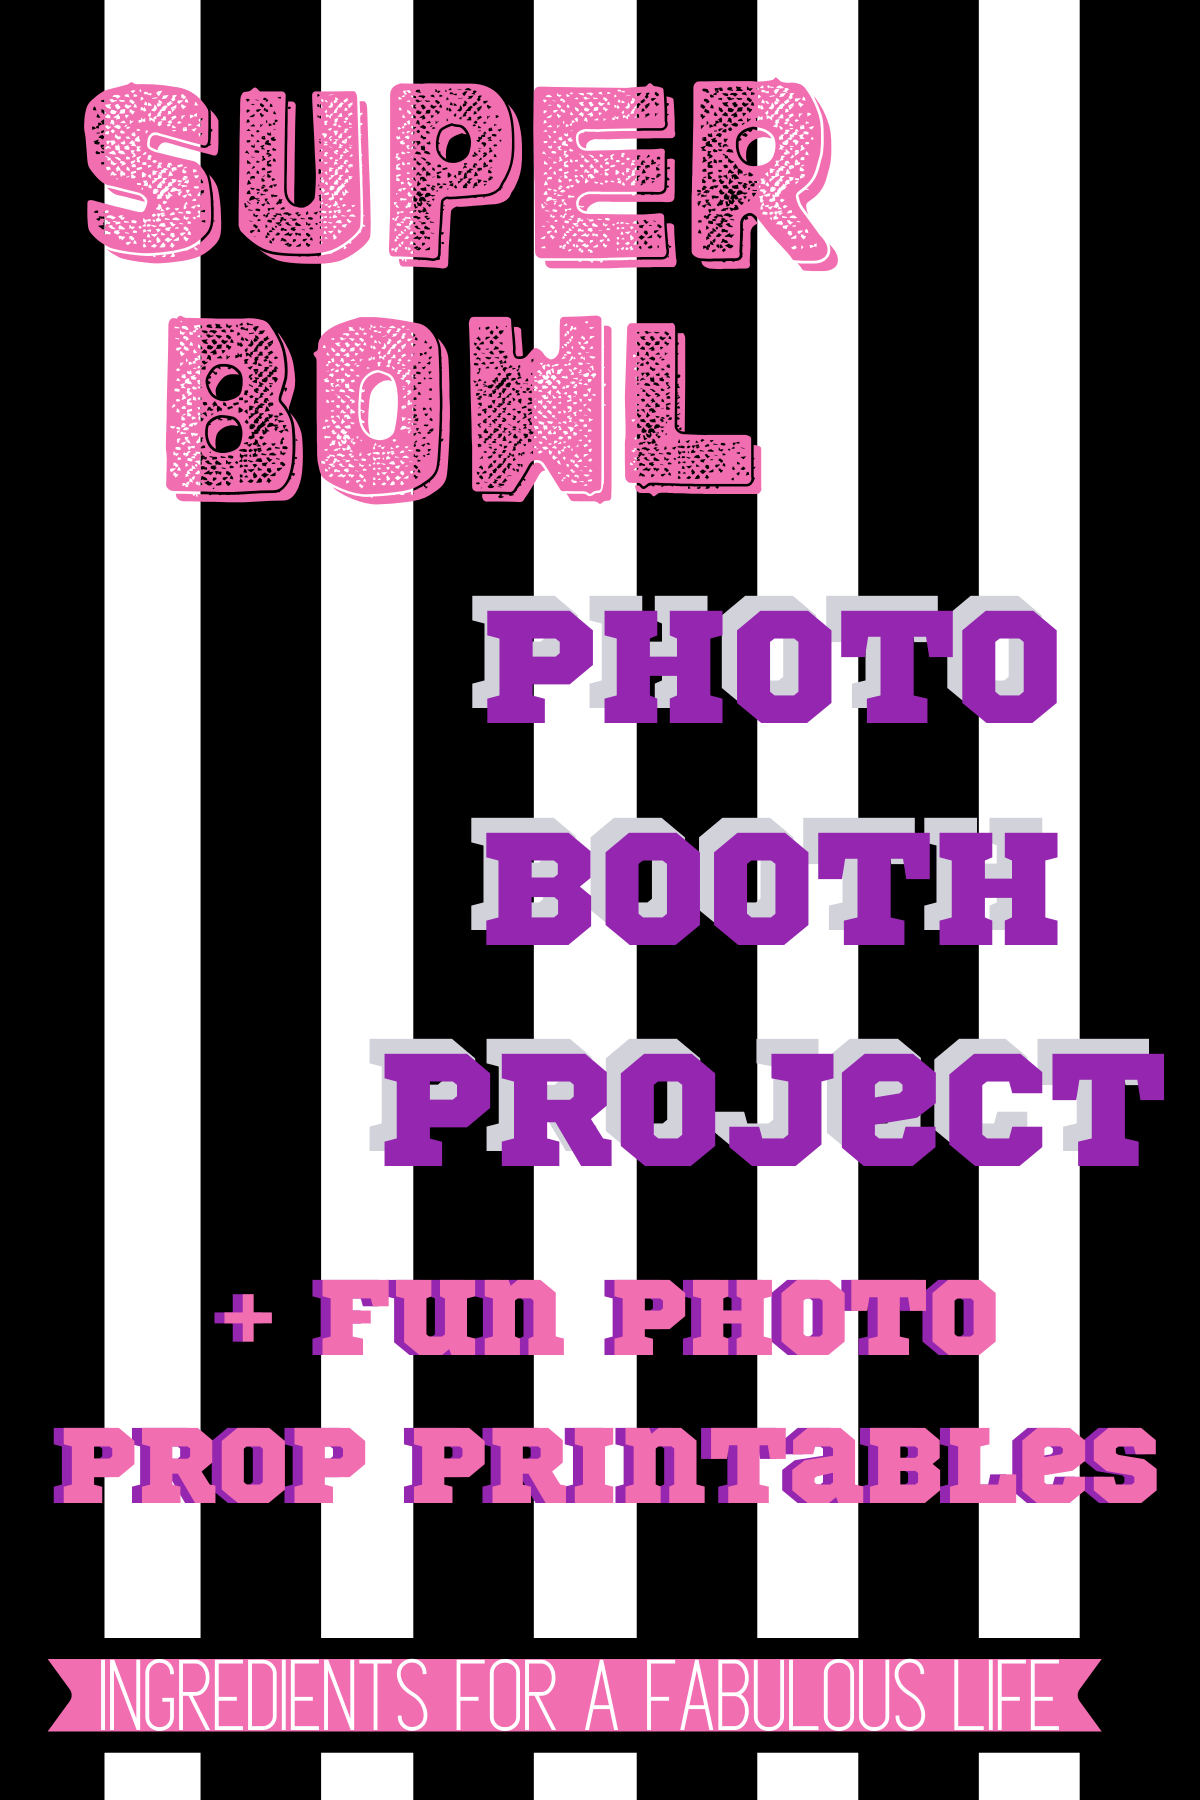 super bowl referee photo booth project